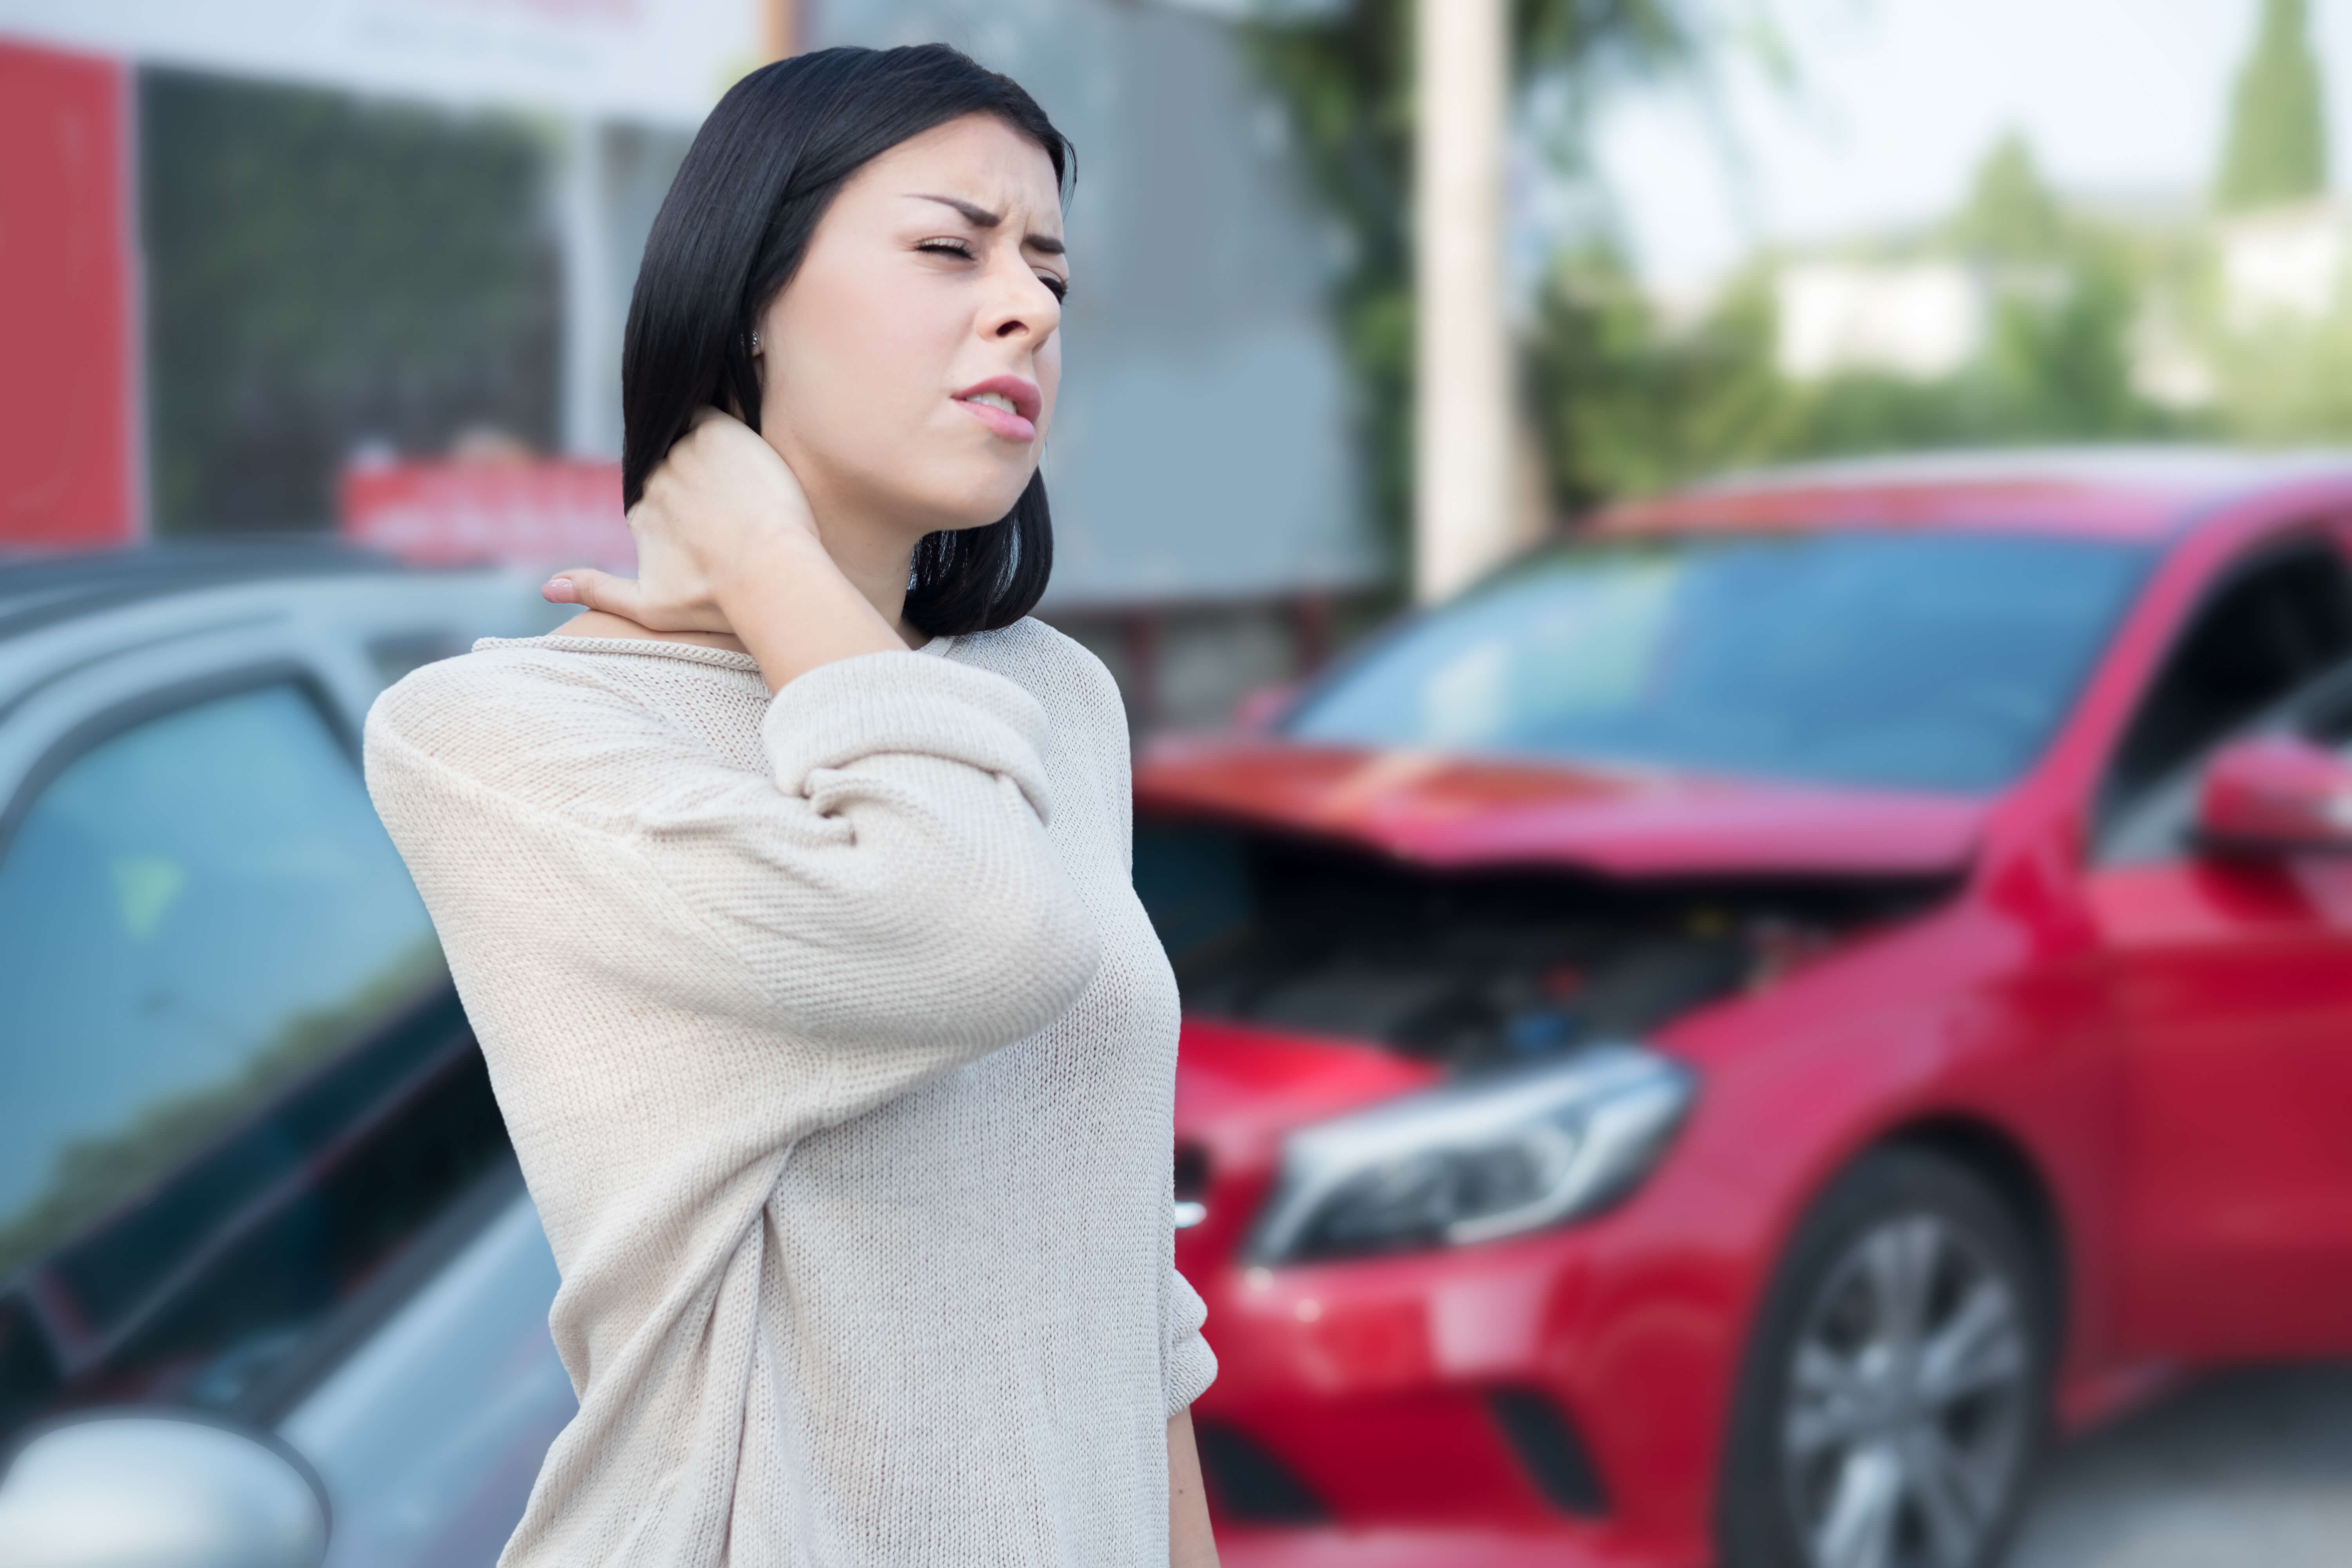 Automobile Accident Injuries